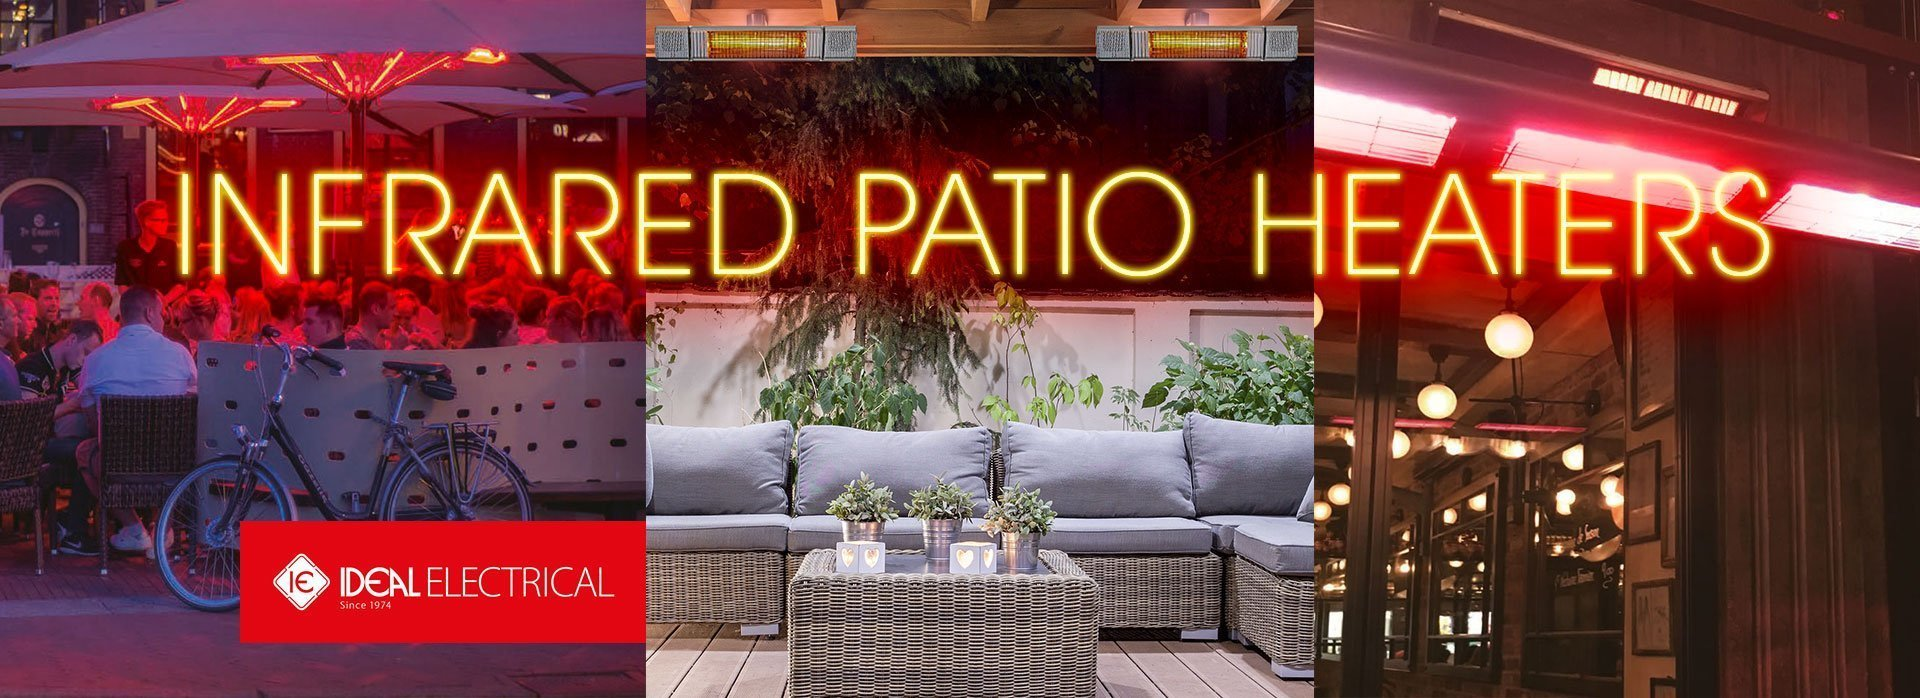 Infrared Patio heaters slide